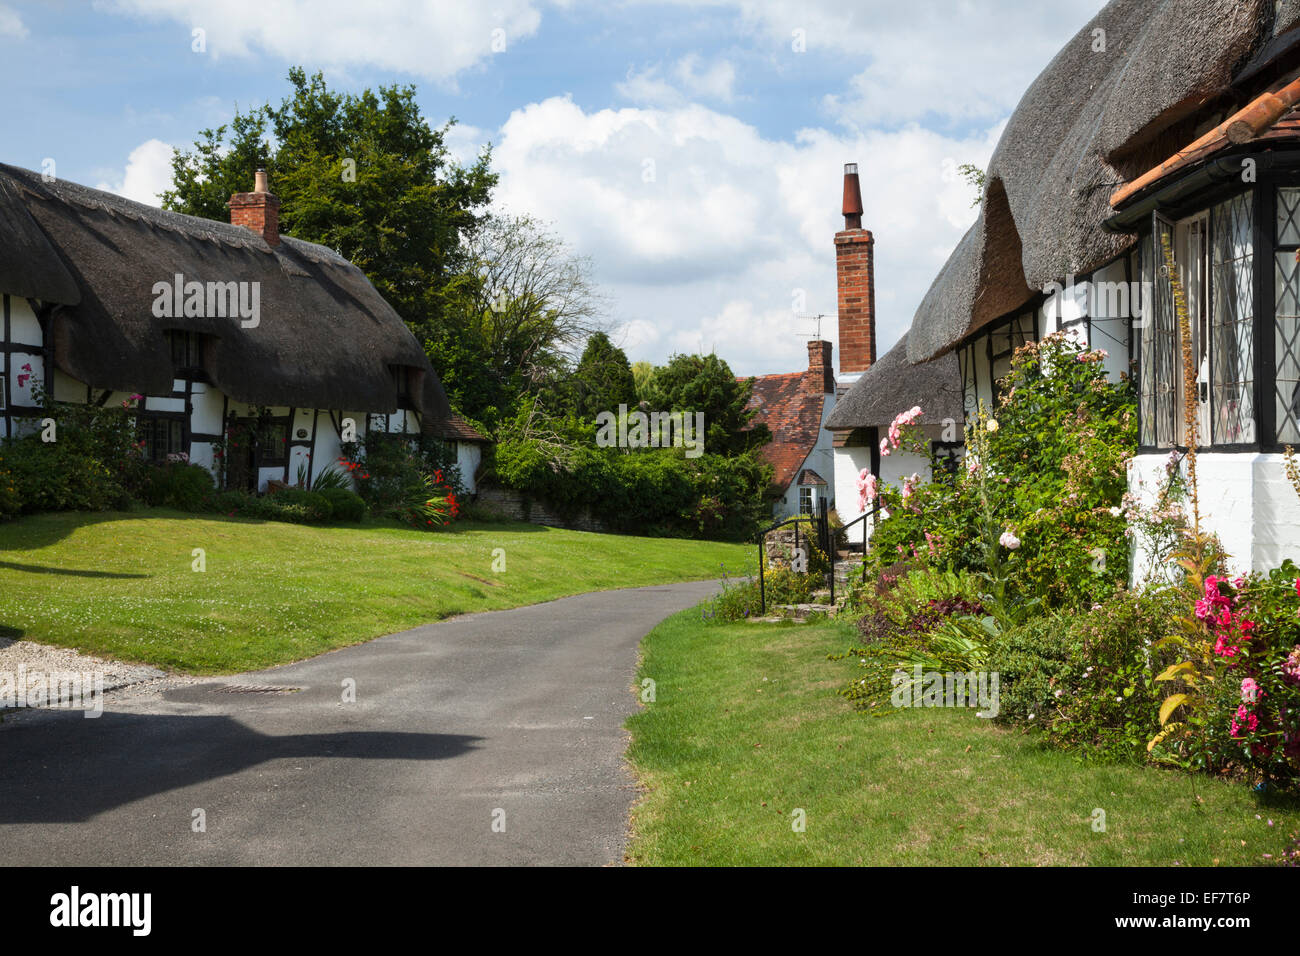 Traditional timber-framed and thatch cottages in Boat Lane, Welford-on-Avon, Warwickshire, England - Stock Image